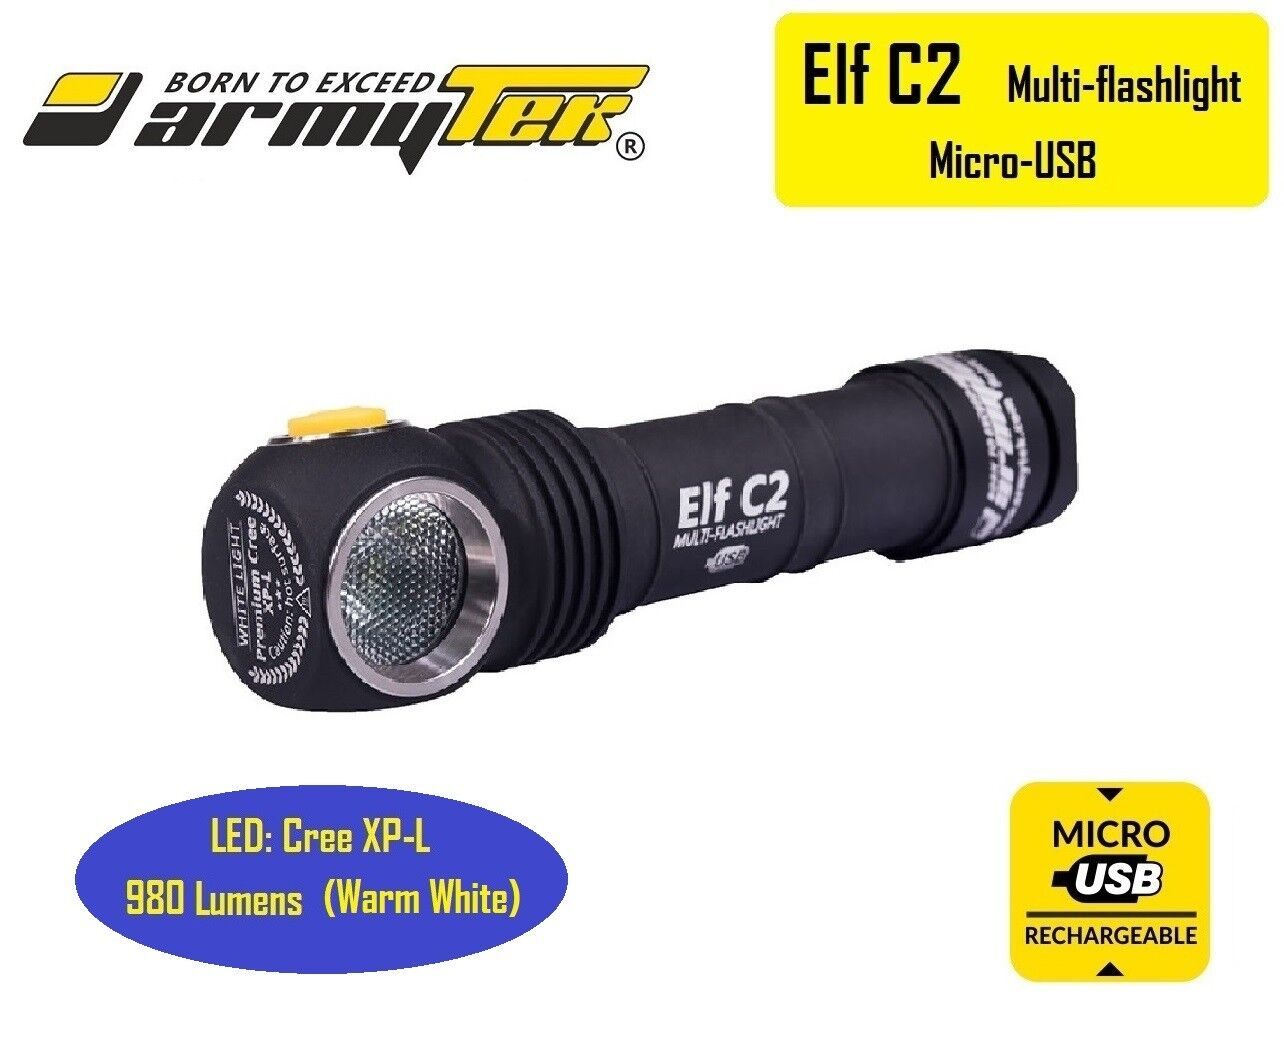 ARMYTEK Elf C2 USB Cree XP-L 980 Lumens LED Headlight Flashlight - Warm White